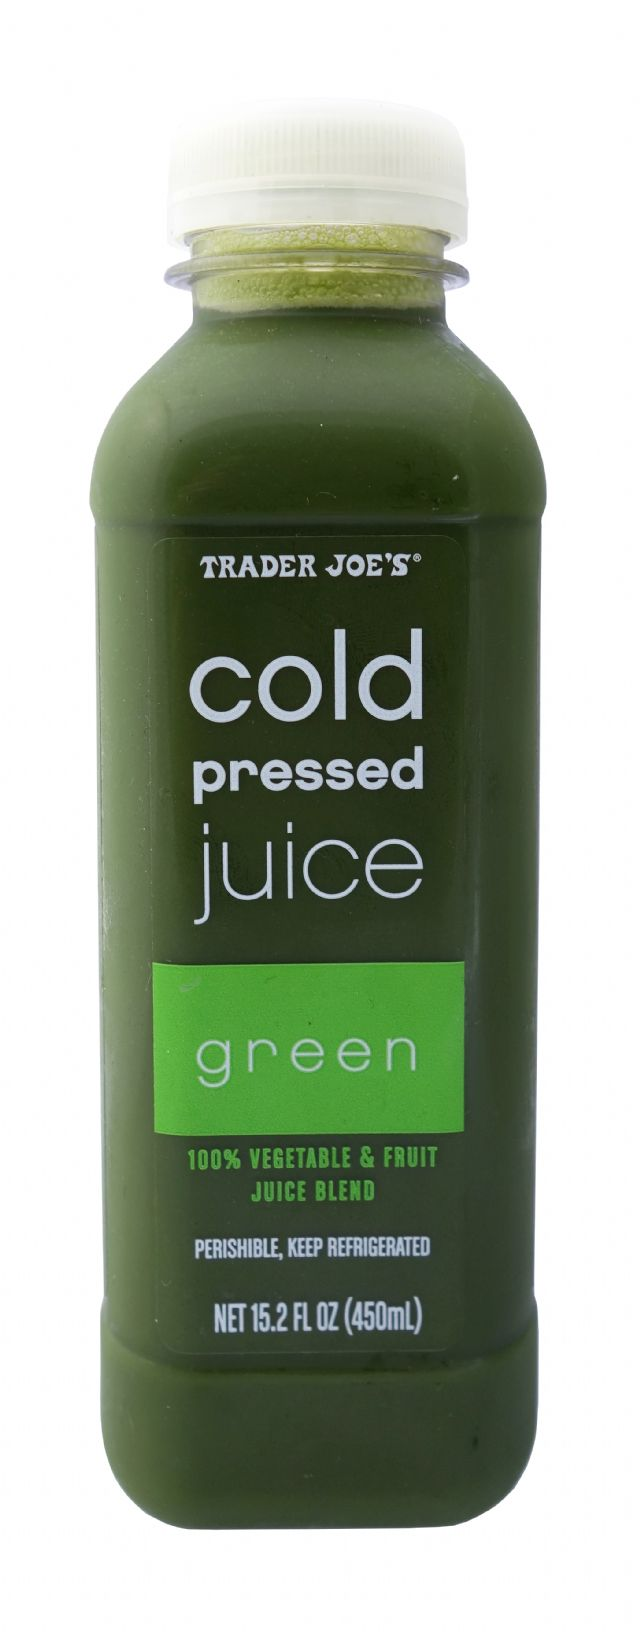 Trader Joe's Cold Pressed Juice: TraderJoes_Green